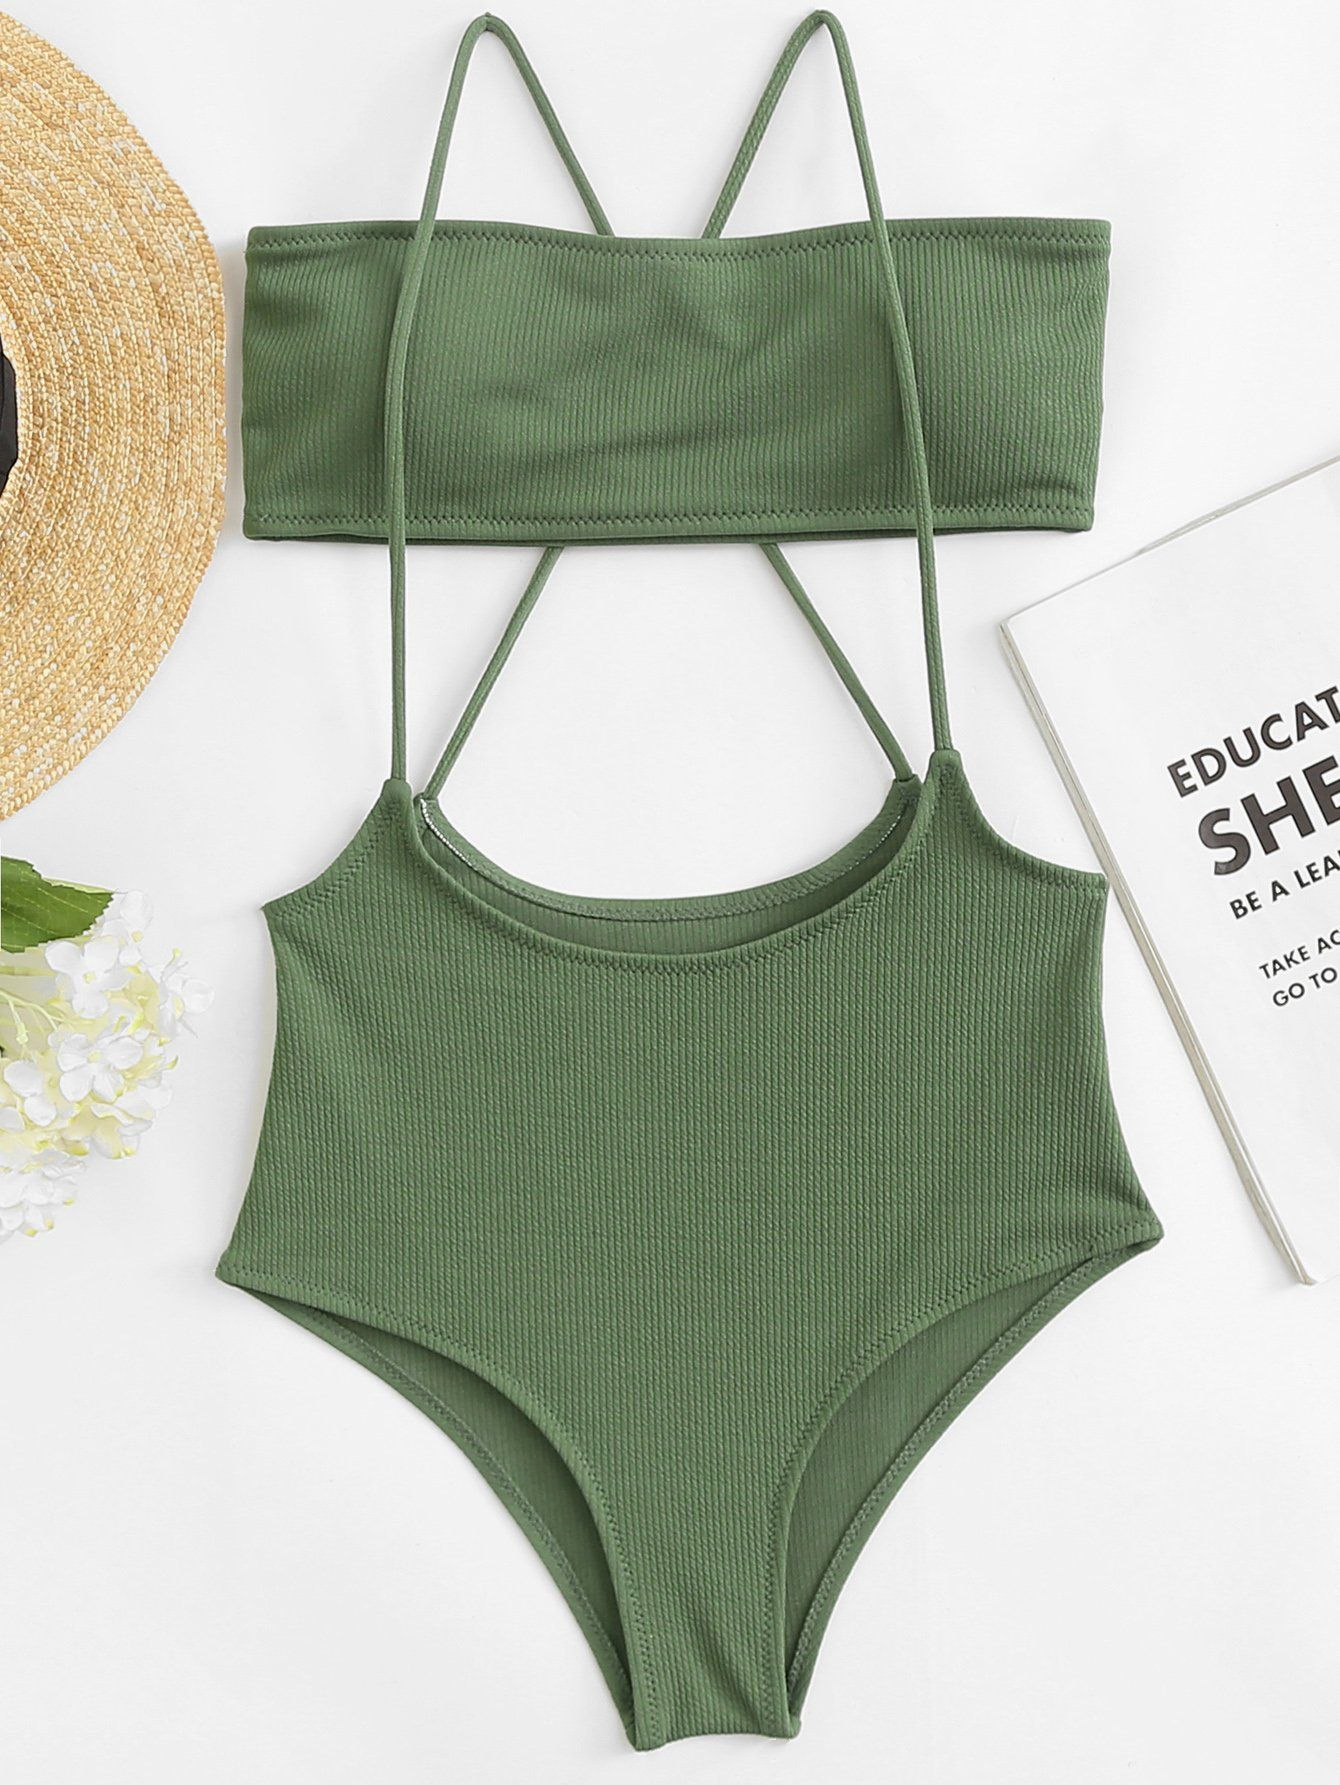 4b5c494fa5e Ribbed Bandeau With Cross Back Suspender Swimsuit in 2019 | Stylin ...